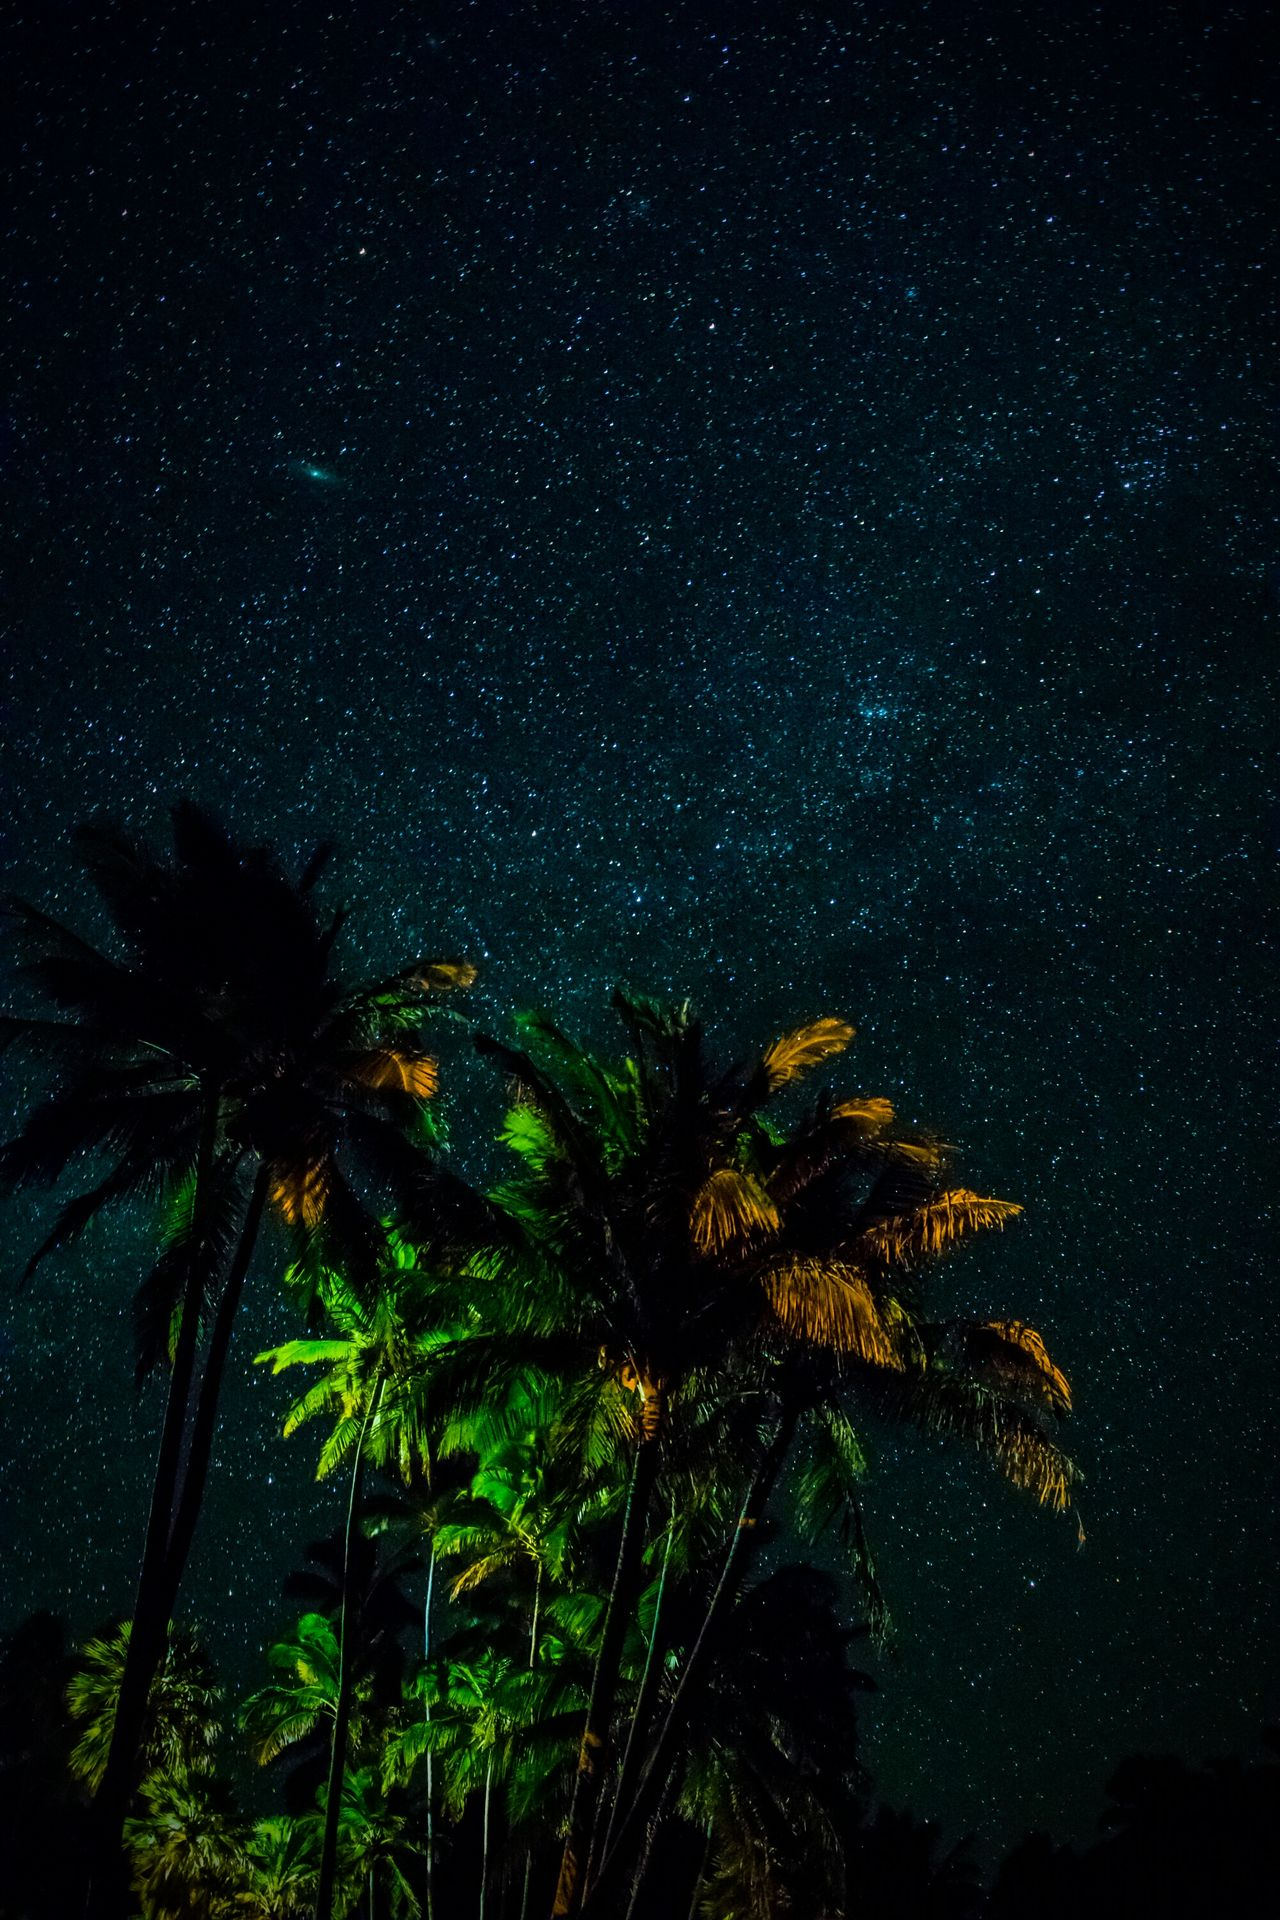 Watching the stars on a lonely beach Astrophotography Nature Beauty In Nature Star - Space Sky Scenics Galaxy Milky Way Space Hawaii Hawaiishots Big Island Love Big Island Hawaii From My Point Of View Landscape_Collection Landscape Photography Big Island Landscape_photography Landscape Tropical Climate Palm Tree